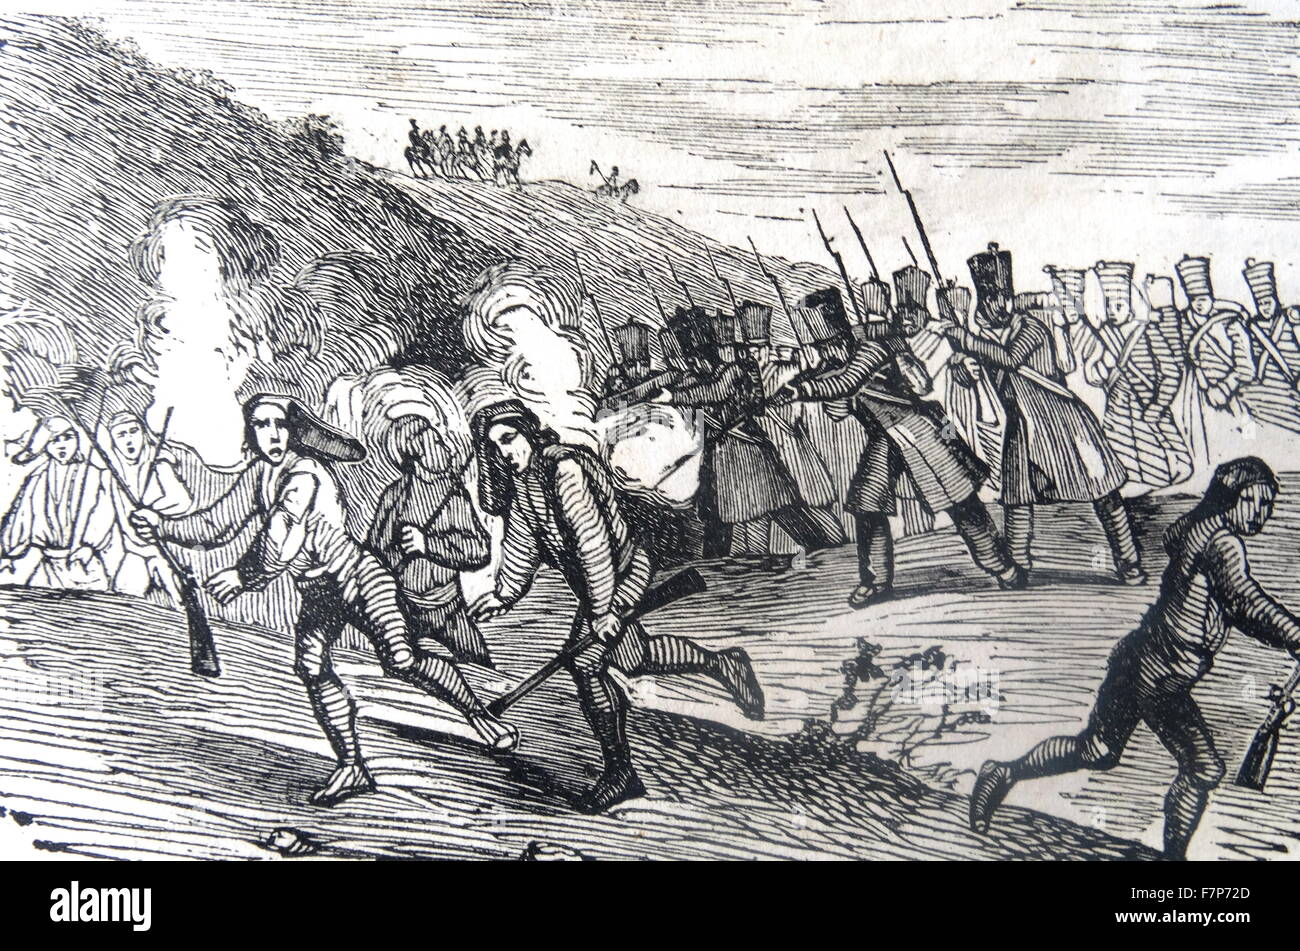 Engraving depicting the defeat of the armies in the Llobregat, Spain. Dated 1808 - Stock Image